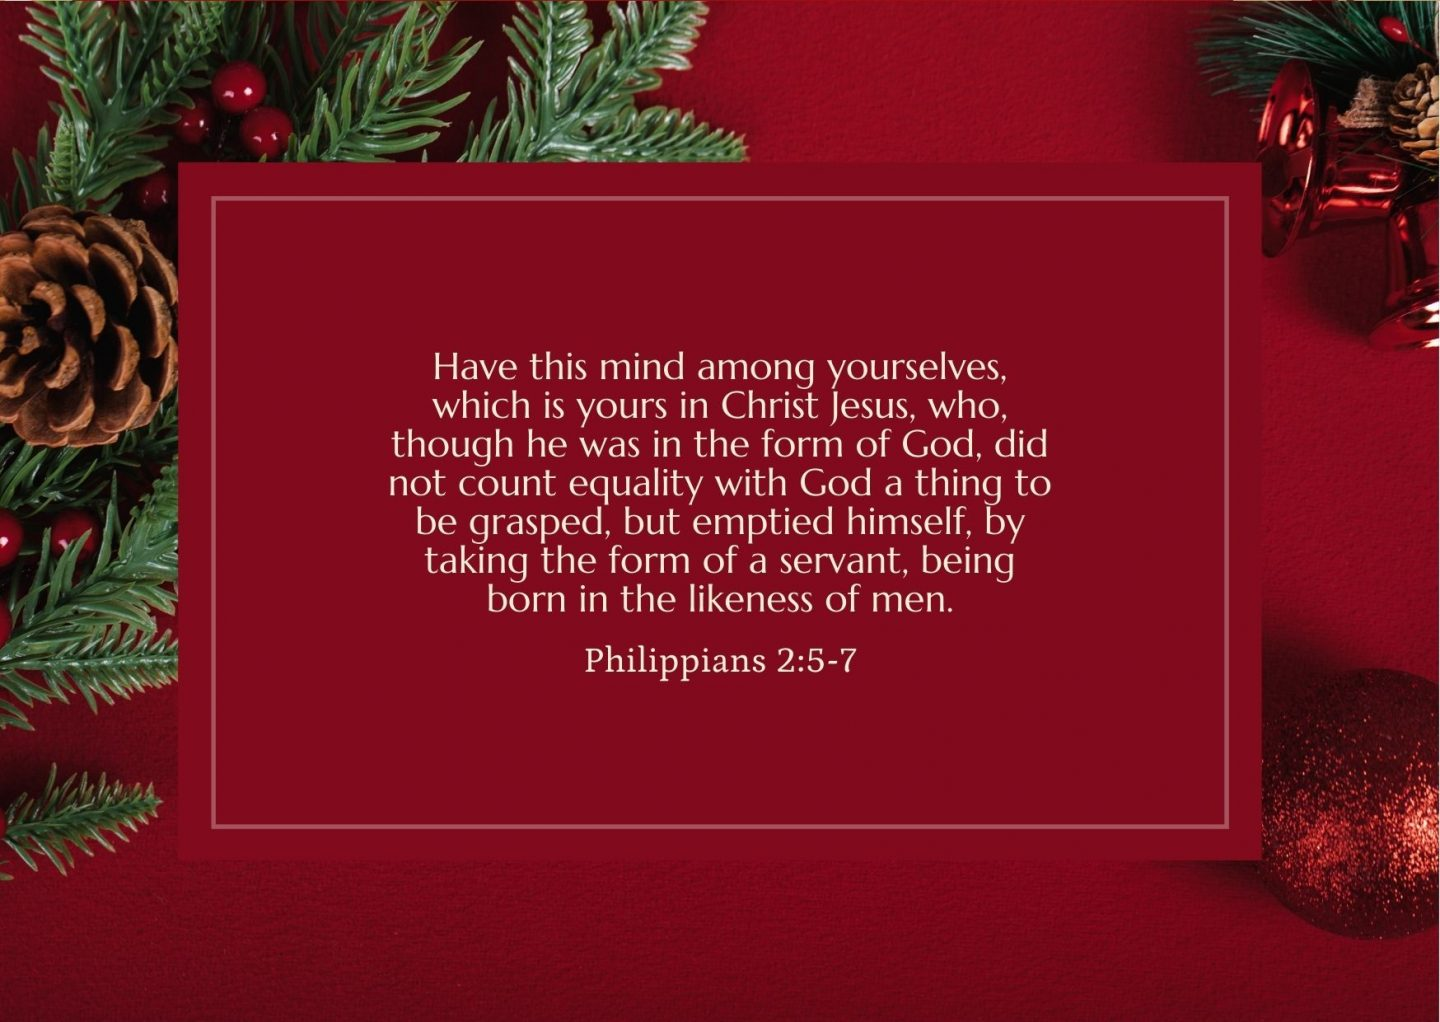 Have this mind among yourselves, which is yours in Christ Jesus,who, though he was in the form of God, did not count equality with God a thing to be grasped,but emptied himself, by taking the form of a servant, being born in the likeness of men. Philippians 2:5-7